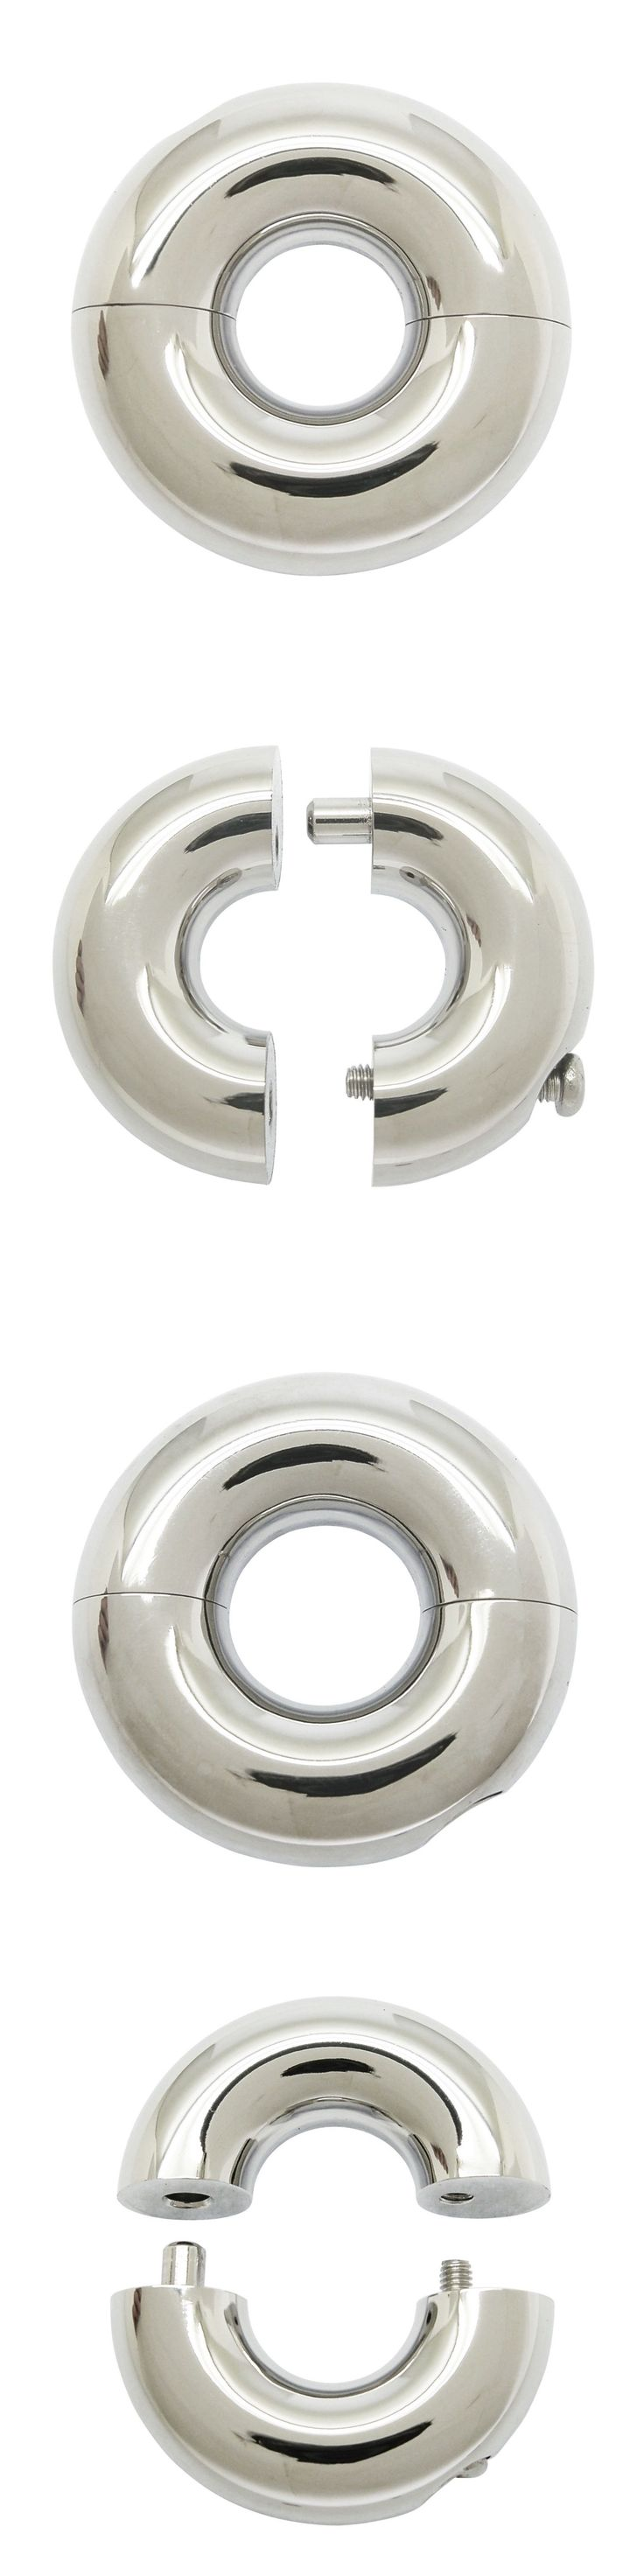 Body Piercing Jewelry 32050: Surgical Steel Tribal Dream Ring Genital Piercing Segment Ring From 5Mm To 15Mm -> BUY IT NOW ONLY: $33.99 on eBay!